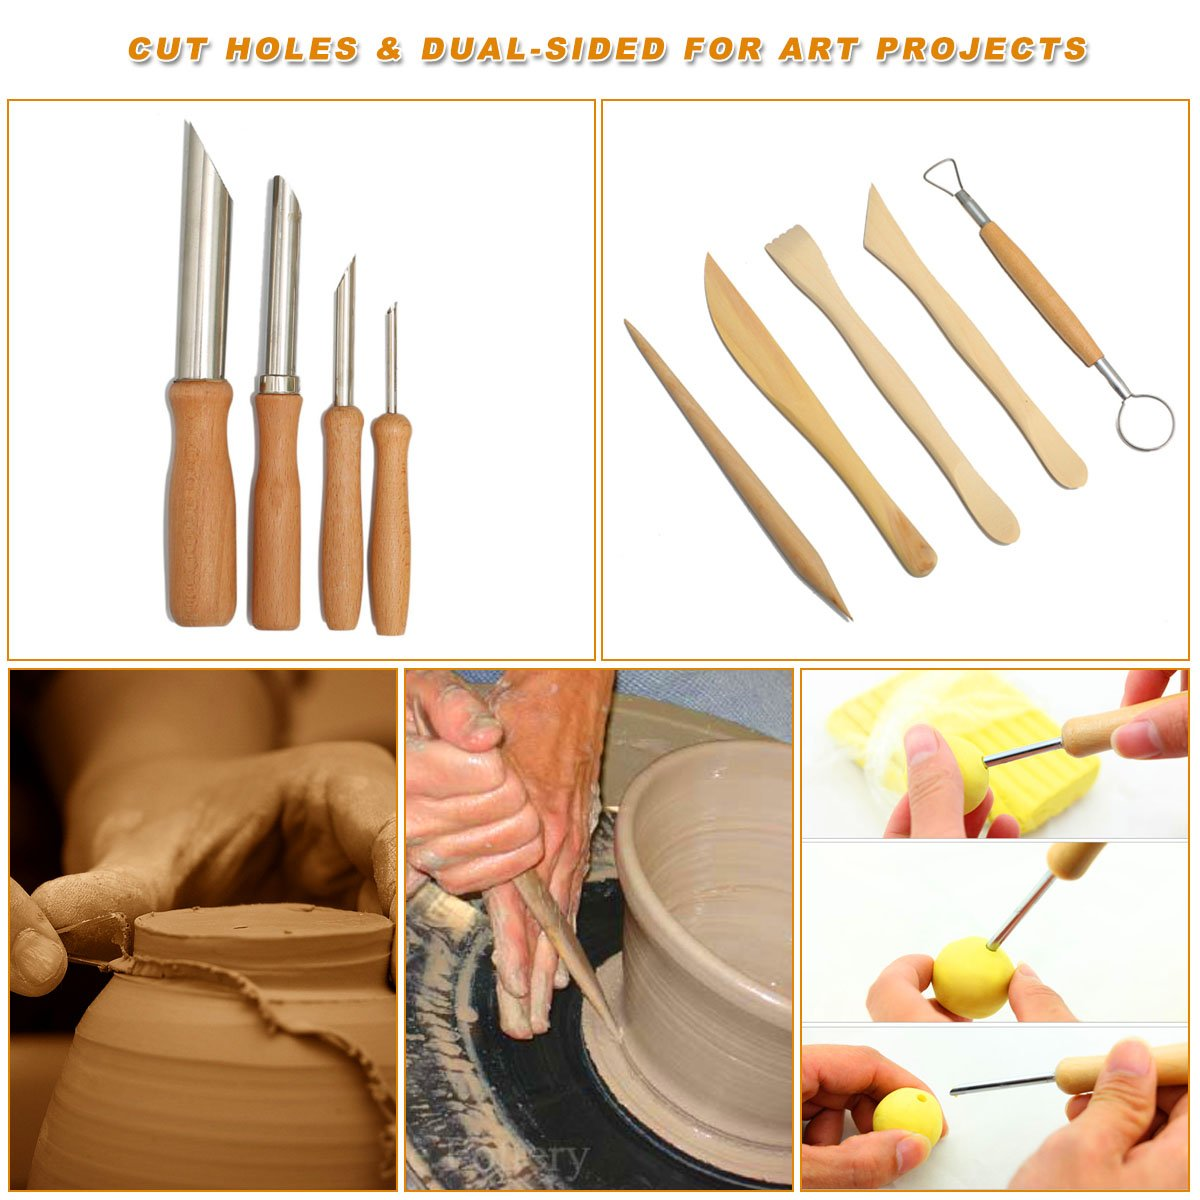 Hotab 45pcs Set Wooden Pottery & Clay Sculpting Tools with Plastic Case by Hotab (Image #3)